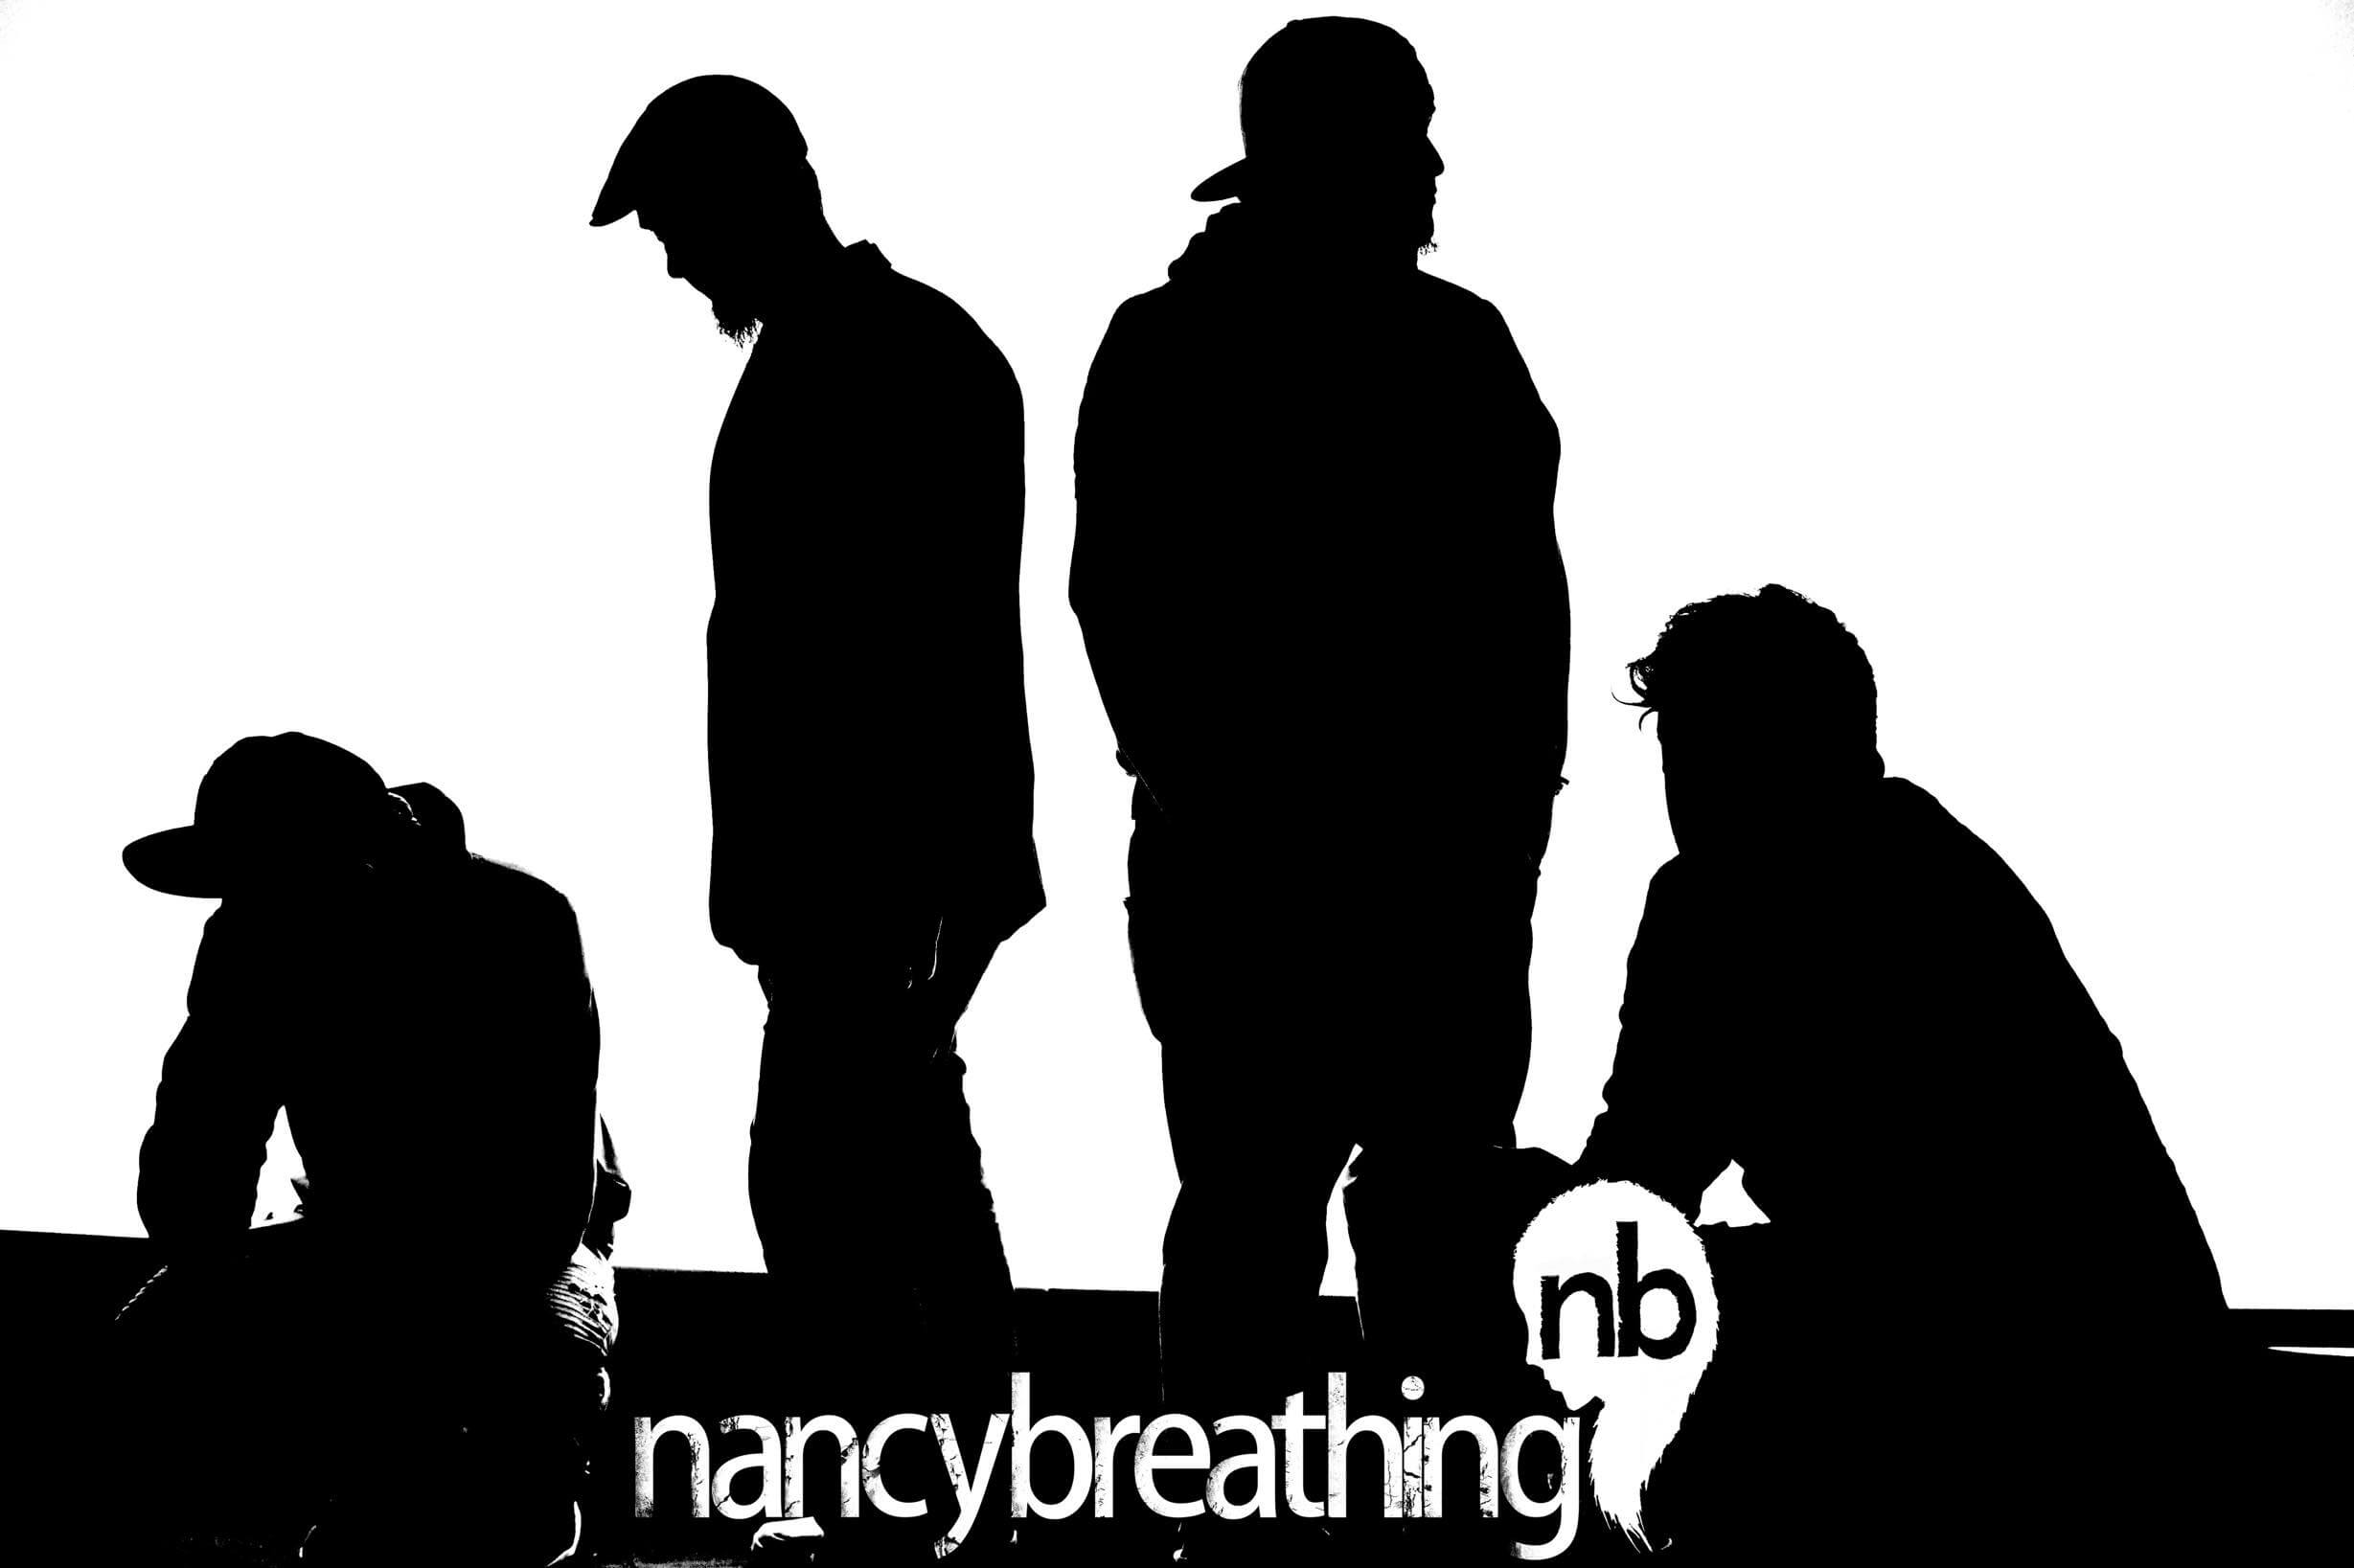 nancybreathing